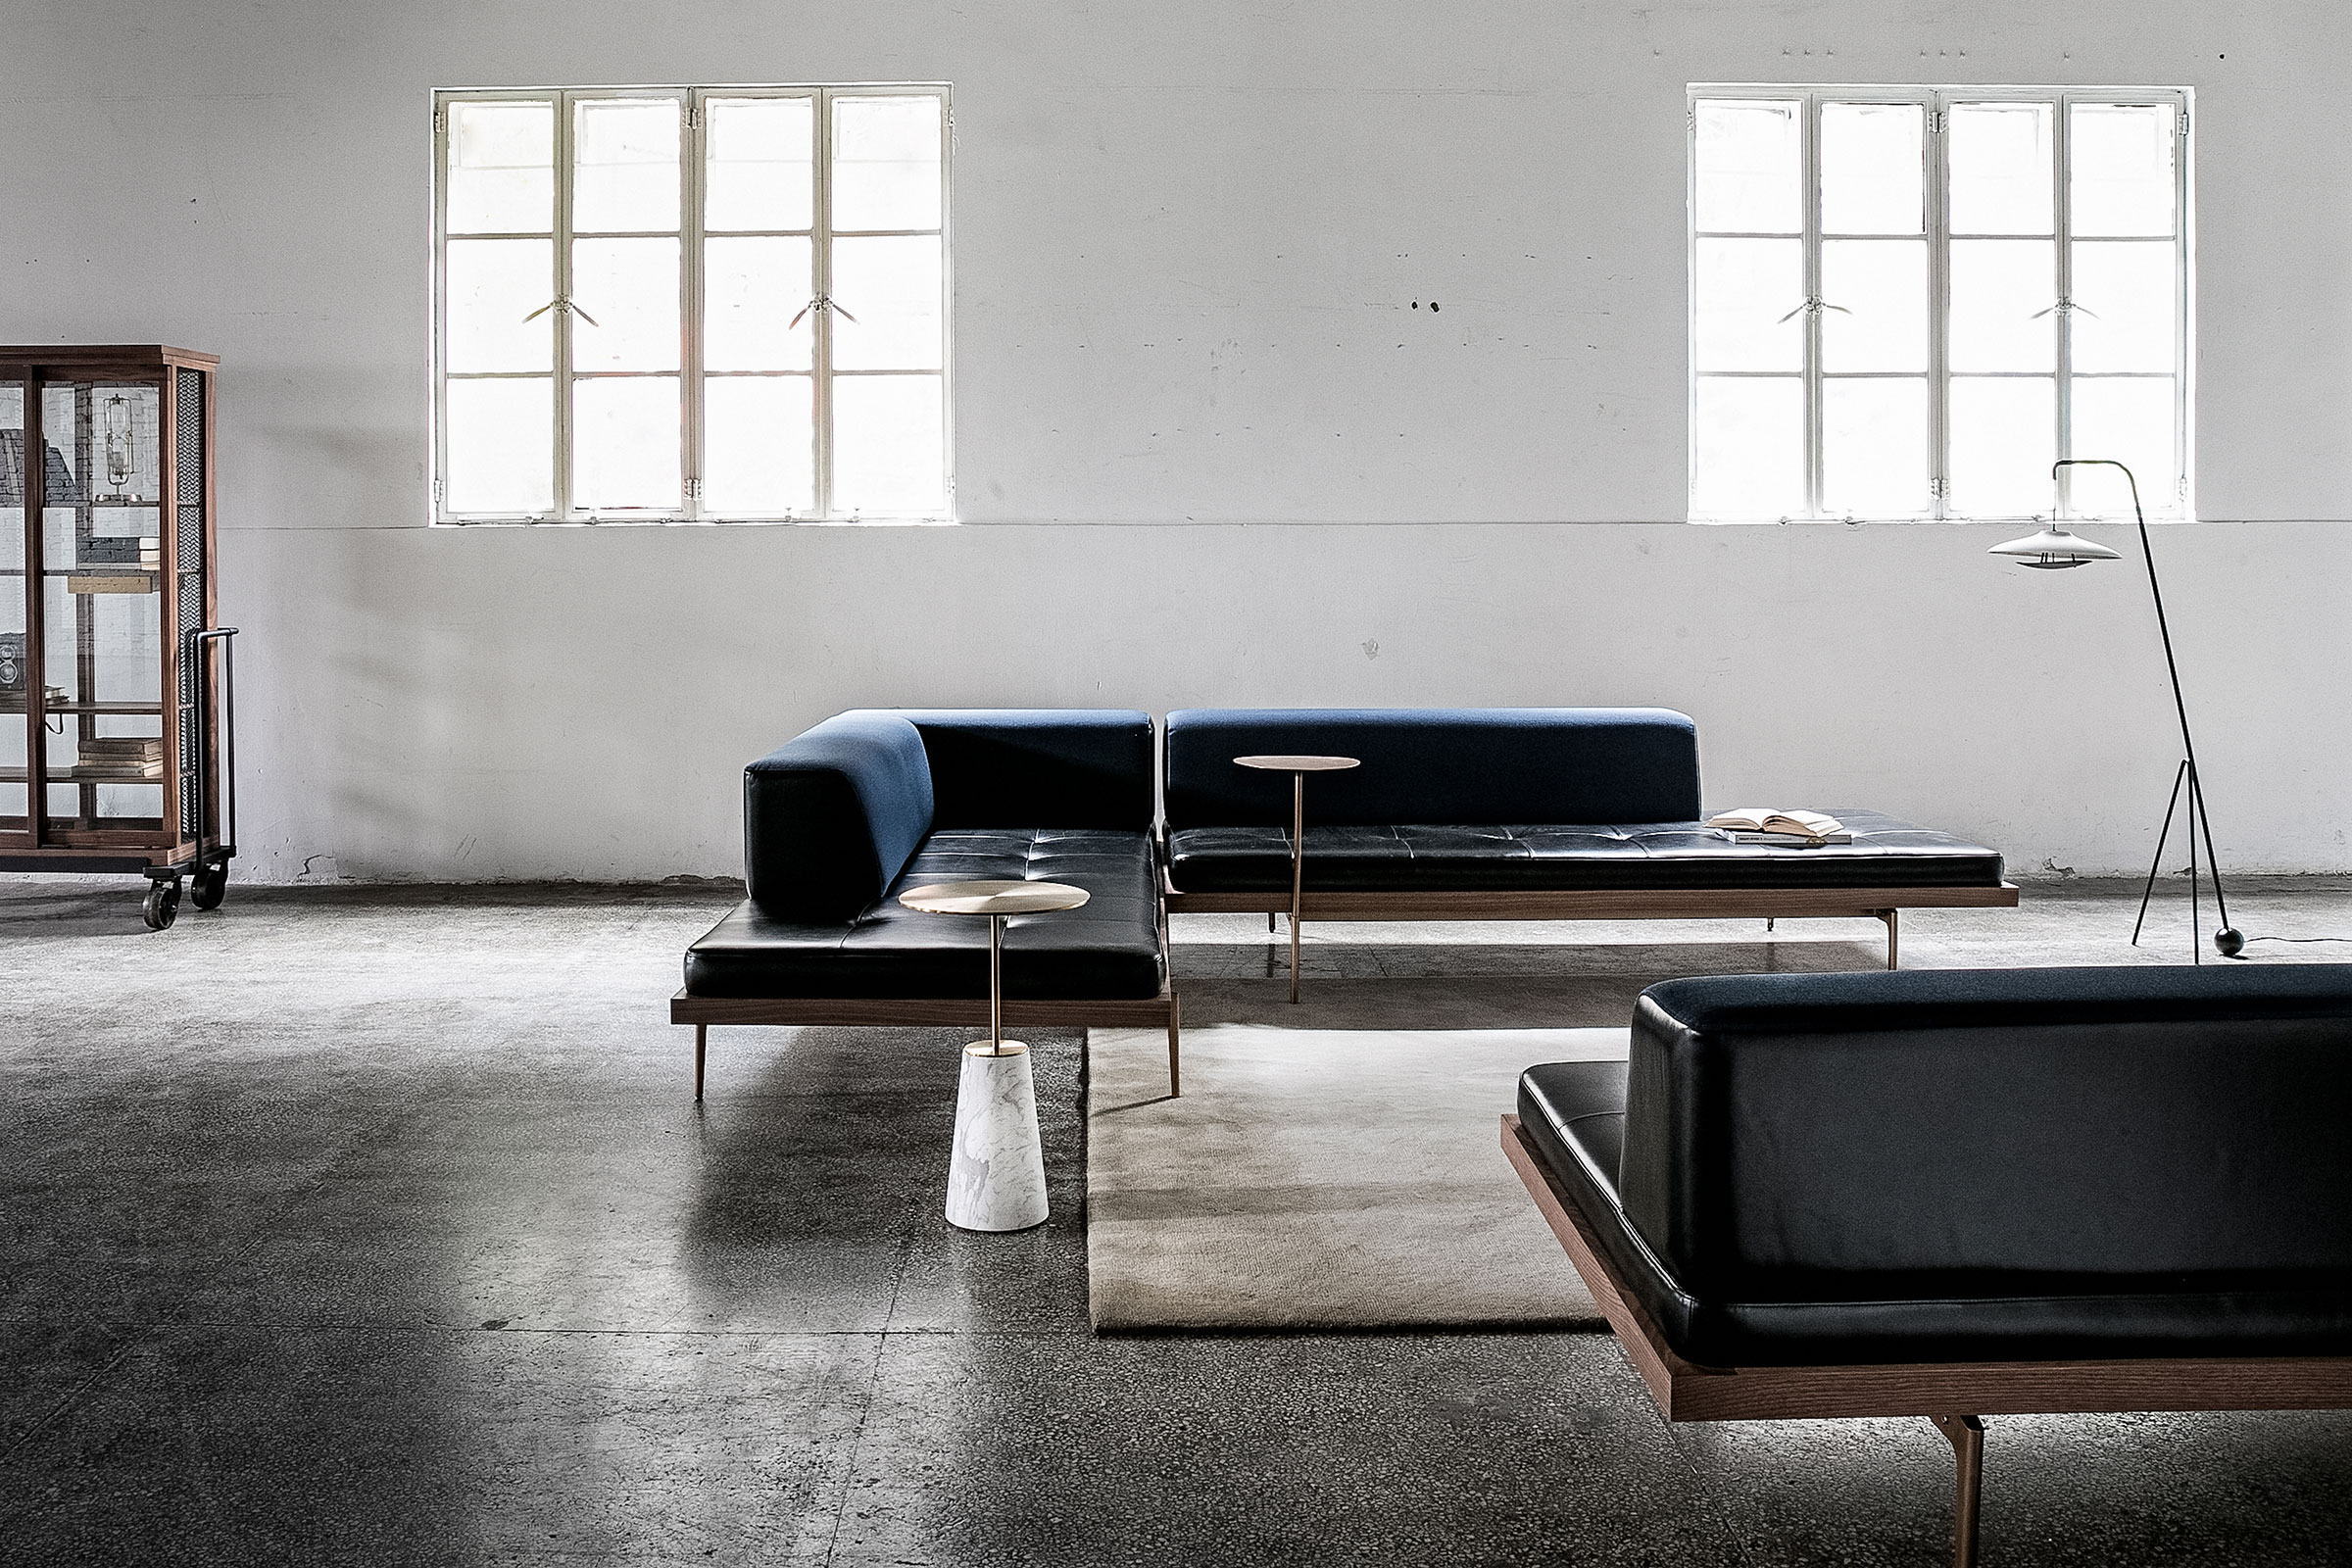 Neri&Hu's Cabinet of Curiosity Read, Discipline sofa and Bund table for Stellarworks